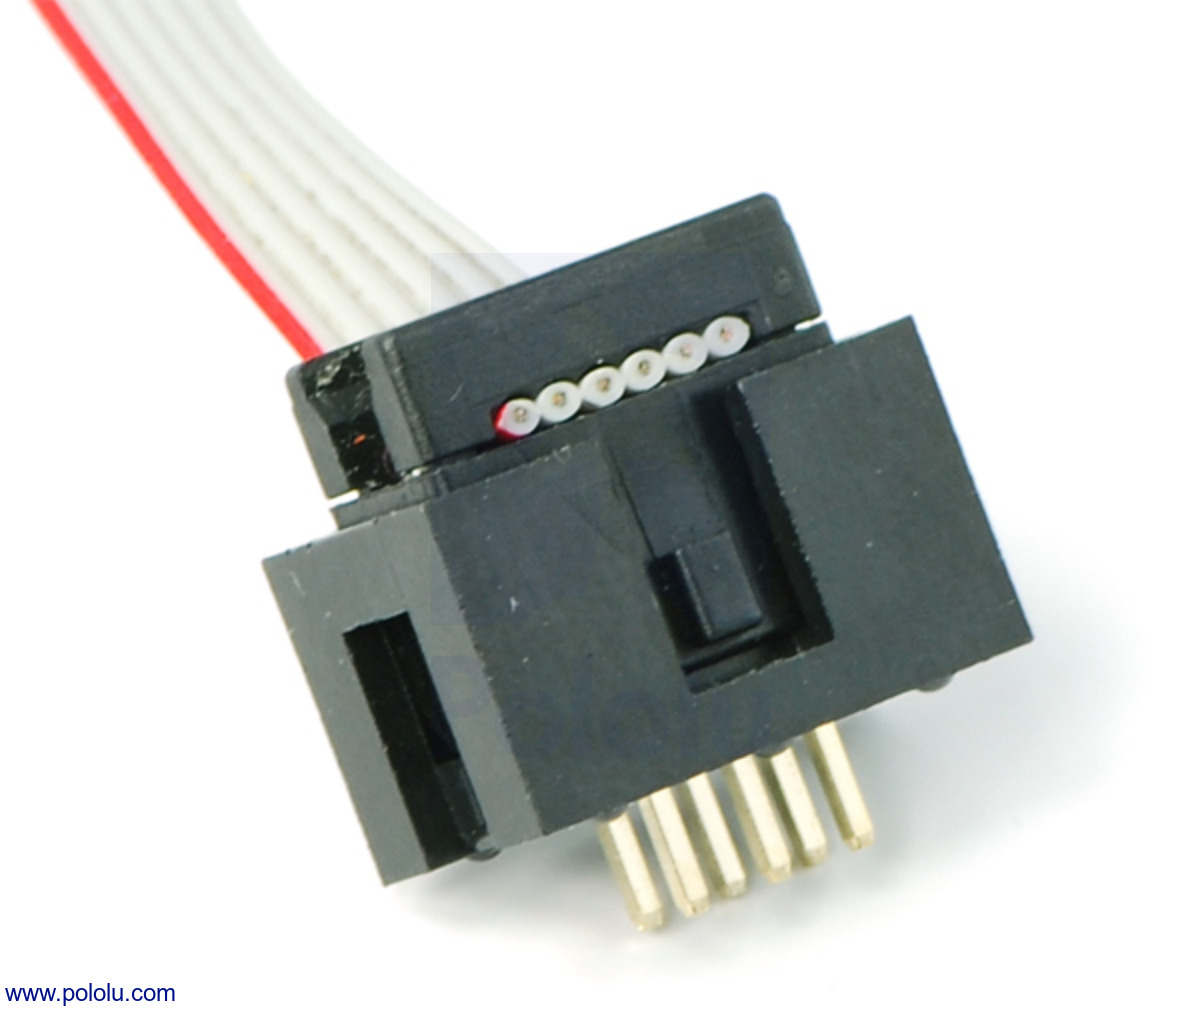 hight resolution of shrouded 2 3 pin box header with a ribbon cable and idc connector plugged into it